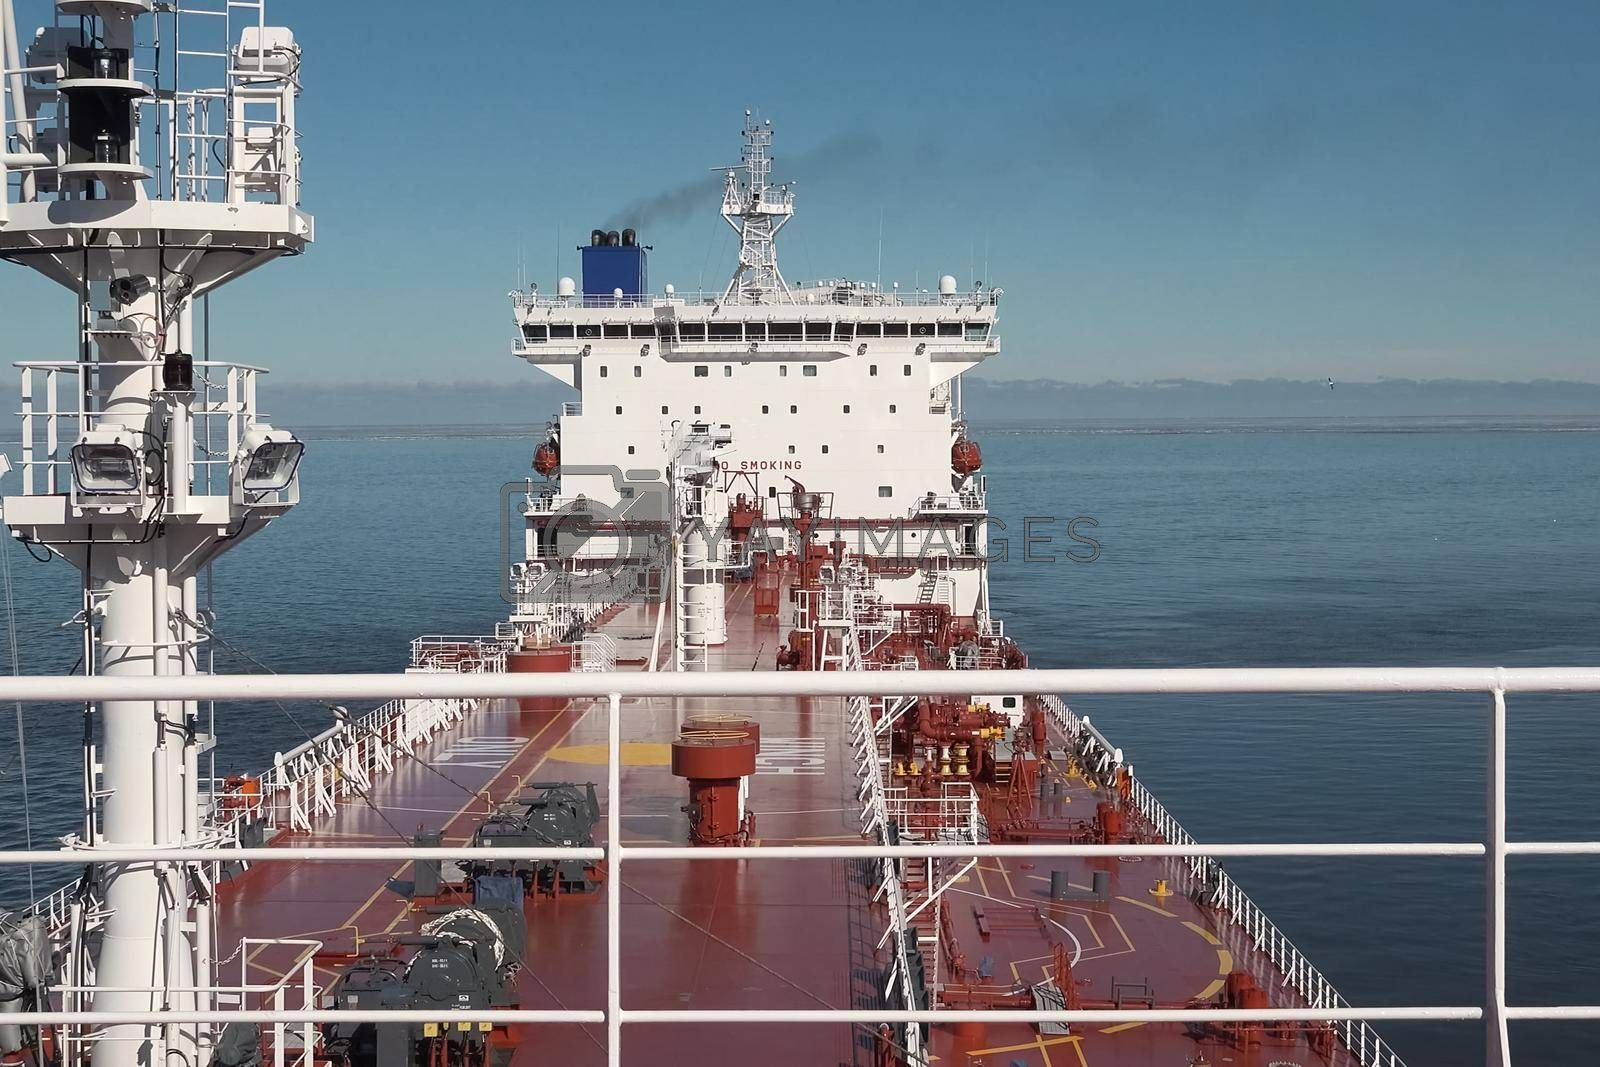 The tanker is filled with liquefied natural gas, transporting gas by sea.